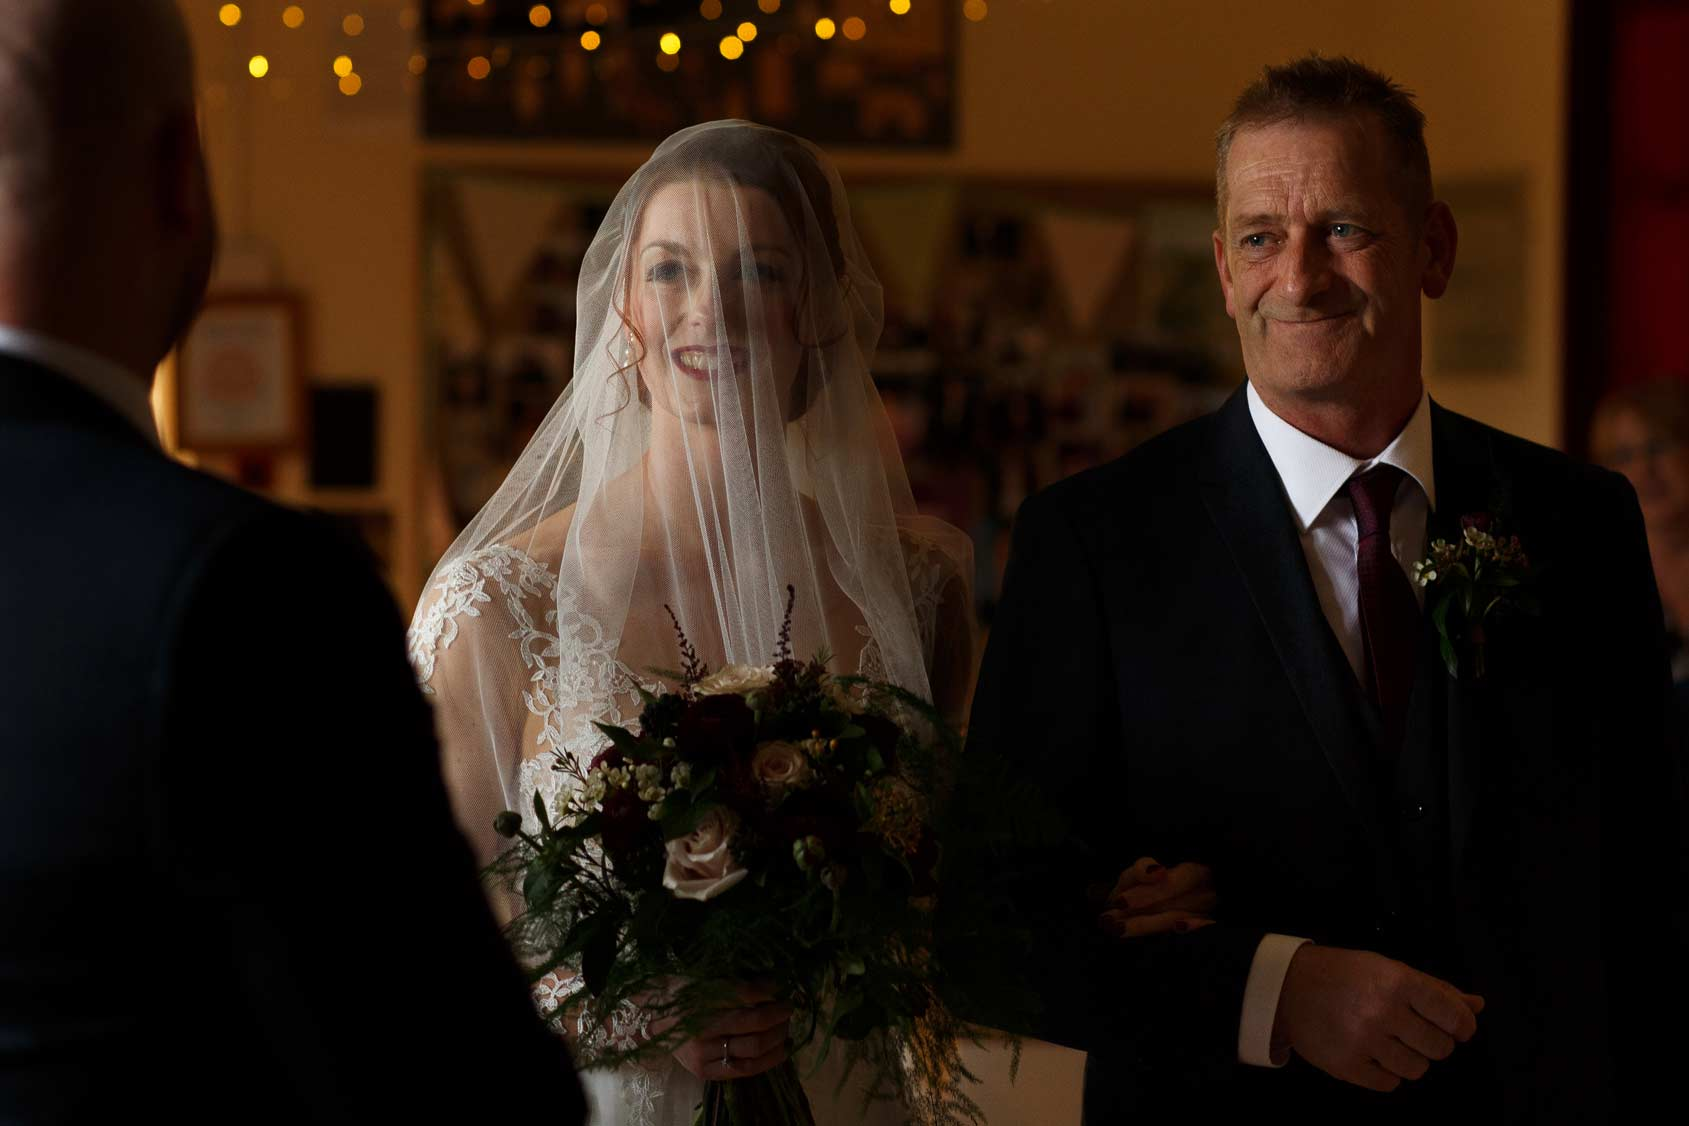 Bride with veil over the face as she walks down the aisle at Lancashire wedding